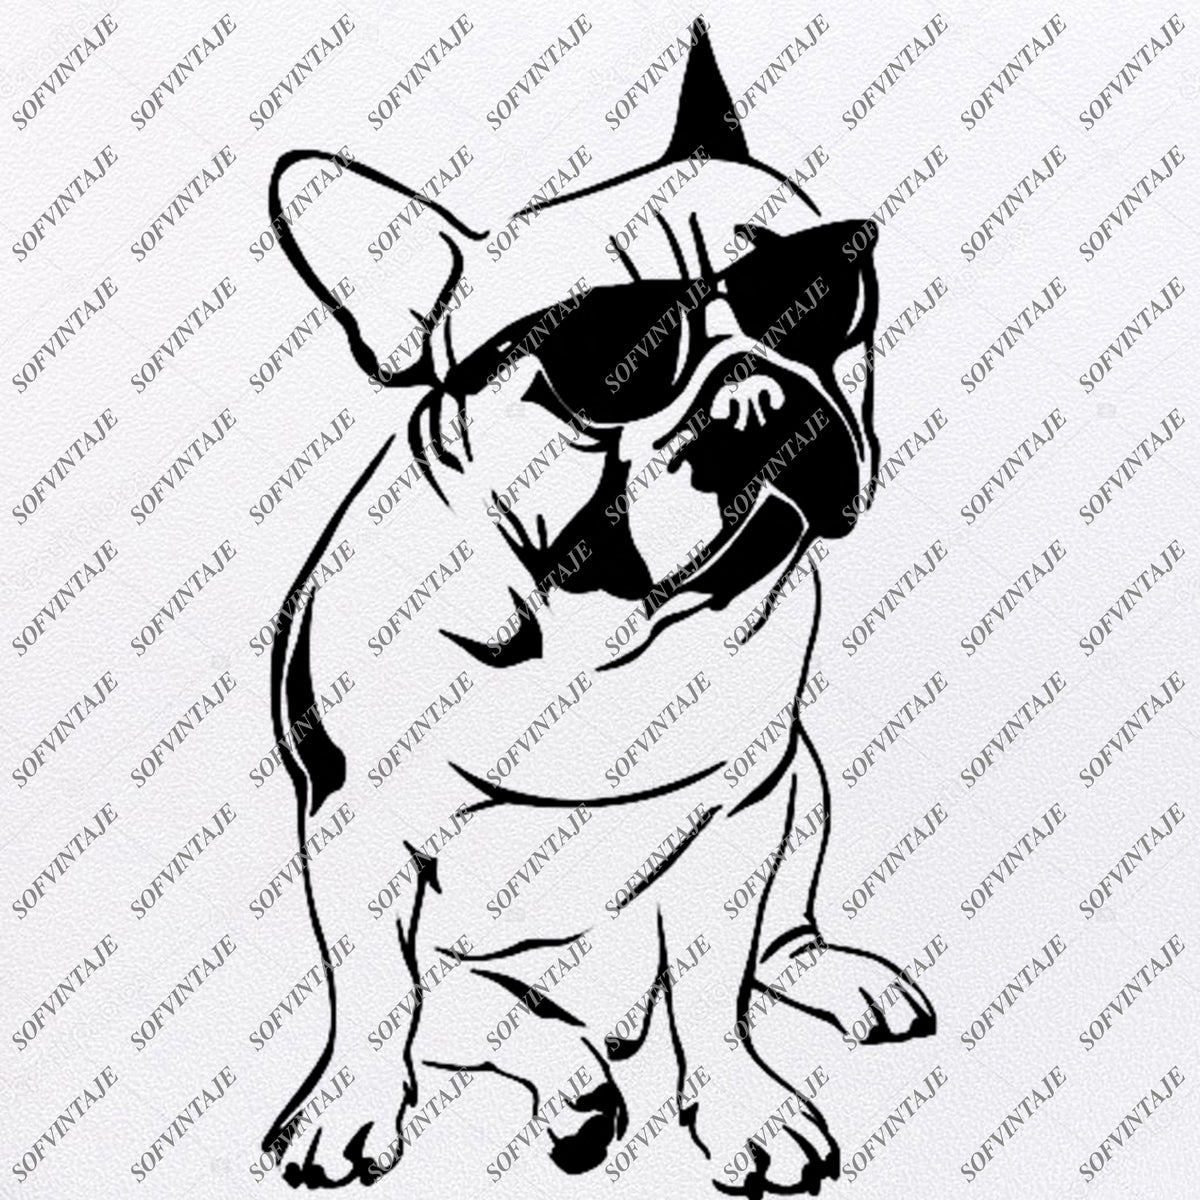 Download BullDOG Svg File-DOG Svg Original Design-BullDOG Clip art ...